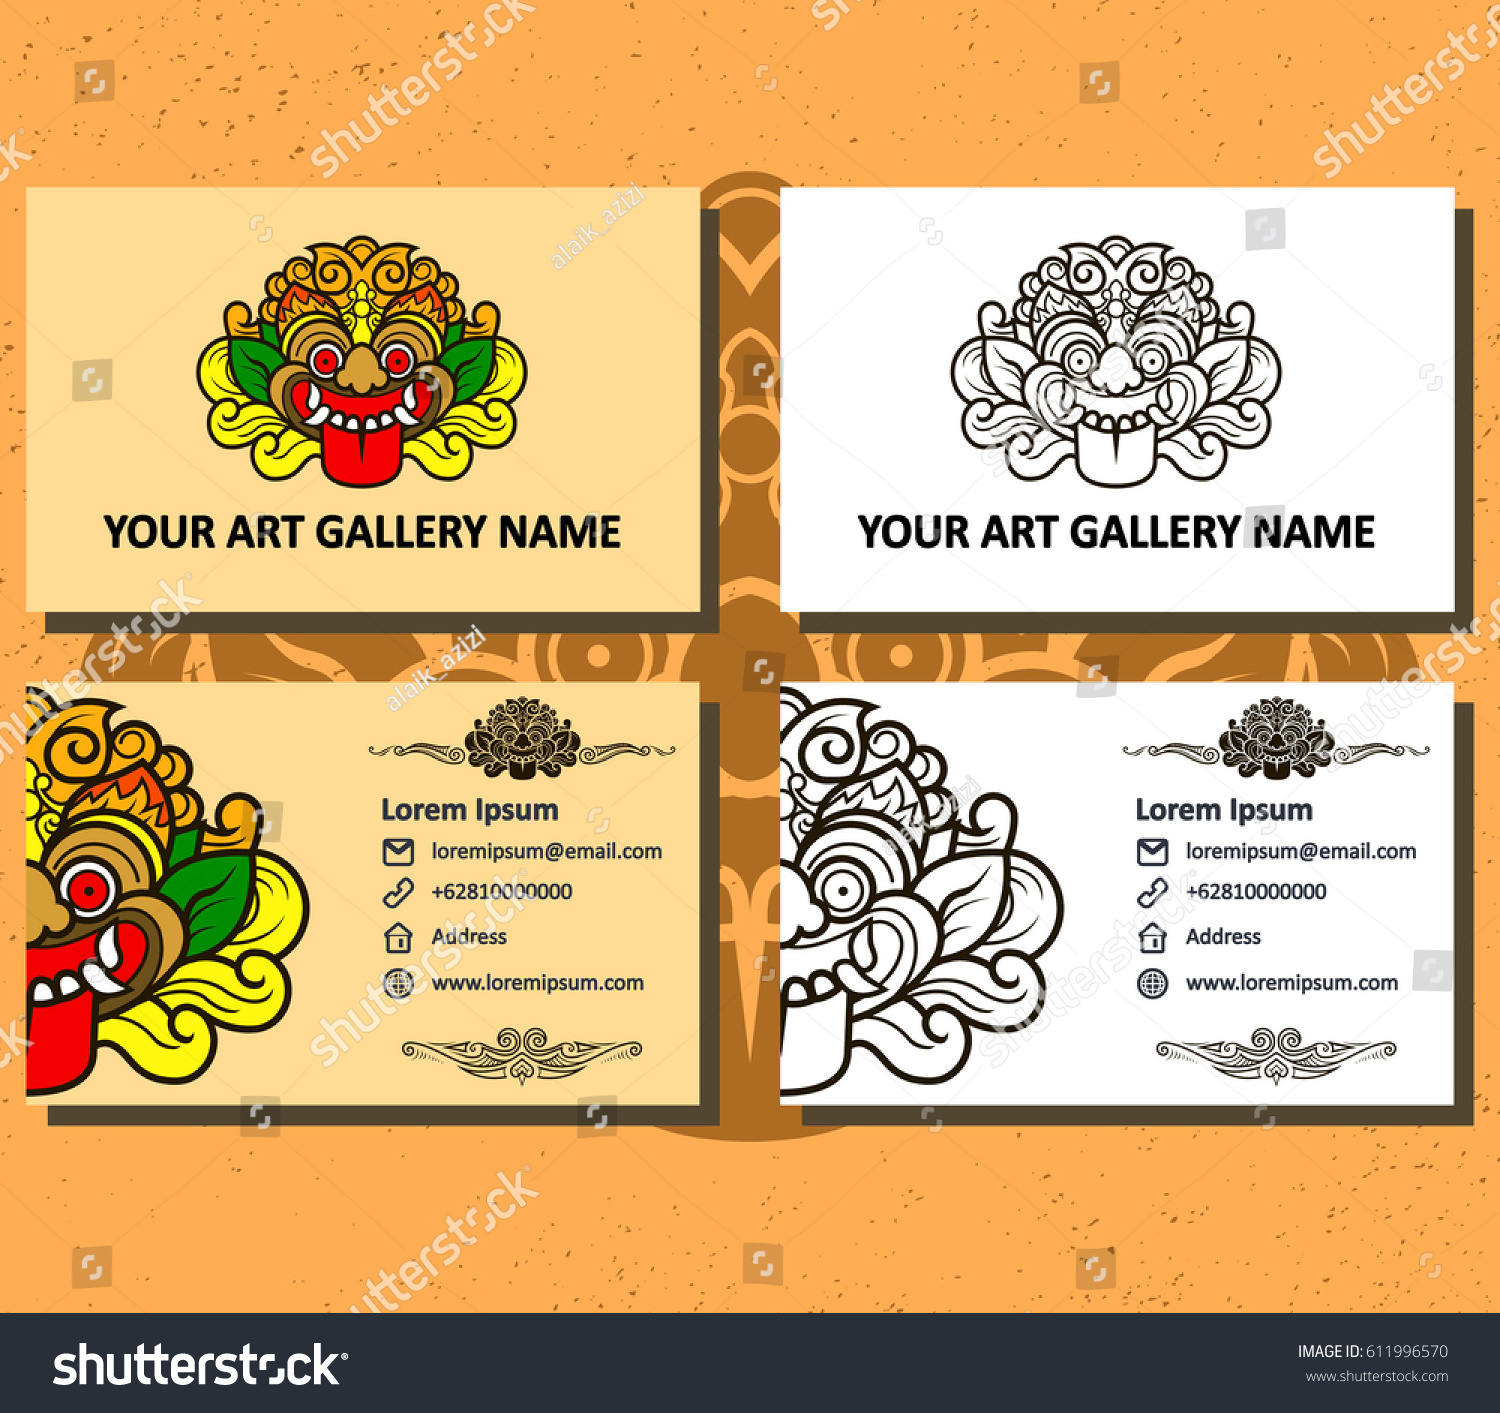 Art Gallery Business Card Stock Vector 611996570 - Shutterstock